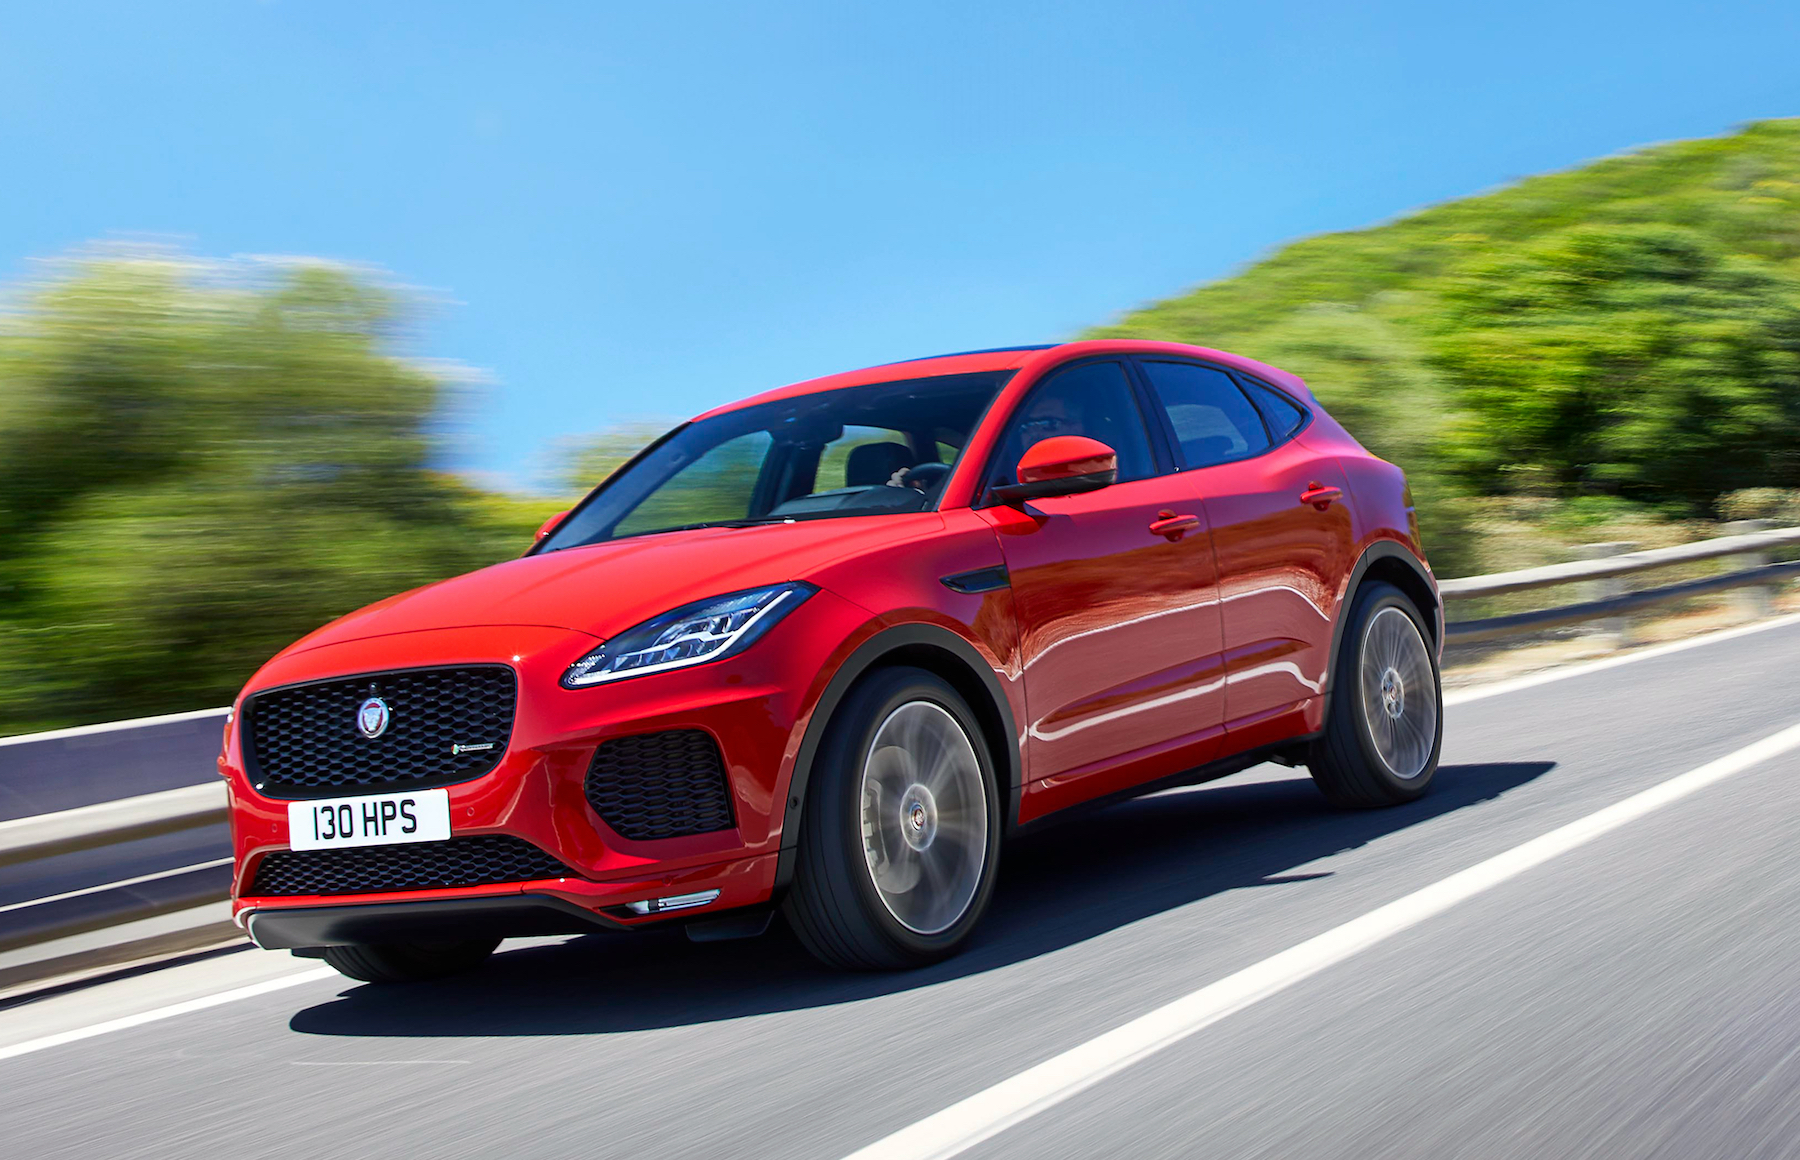 News Jaguar E Pace Breaks Cover In Style Aronline 2016 Xq Suv Crossover